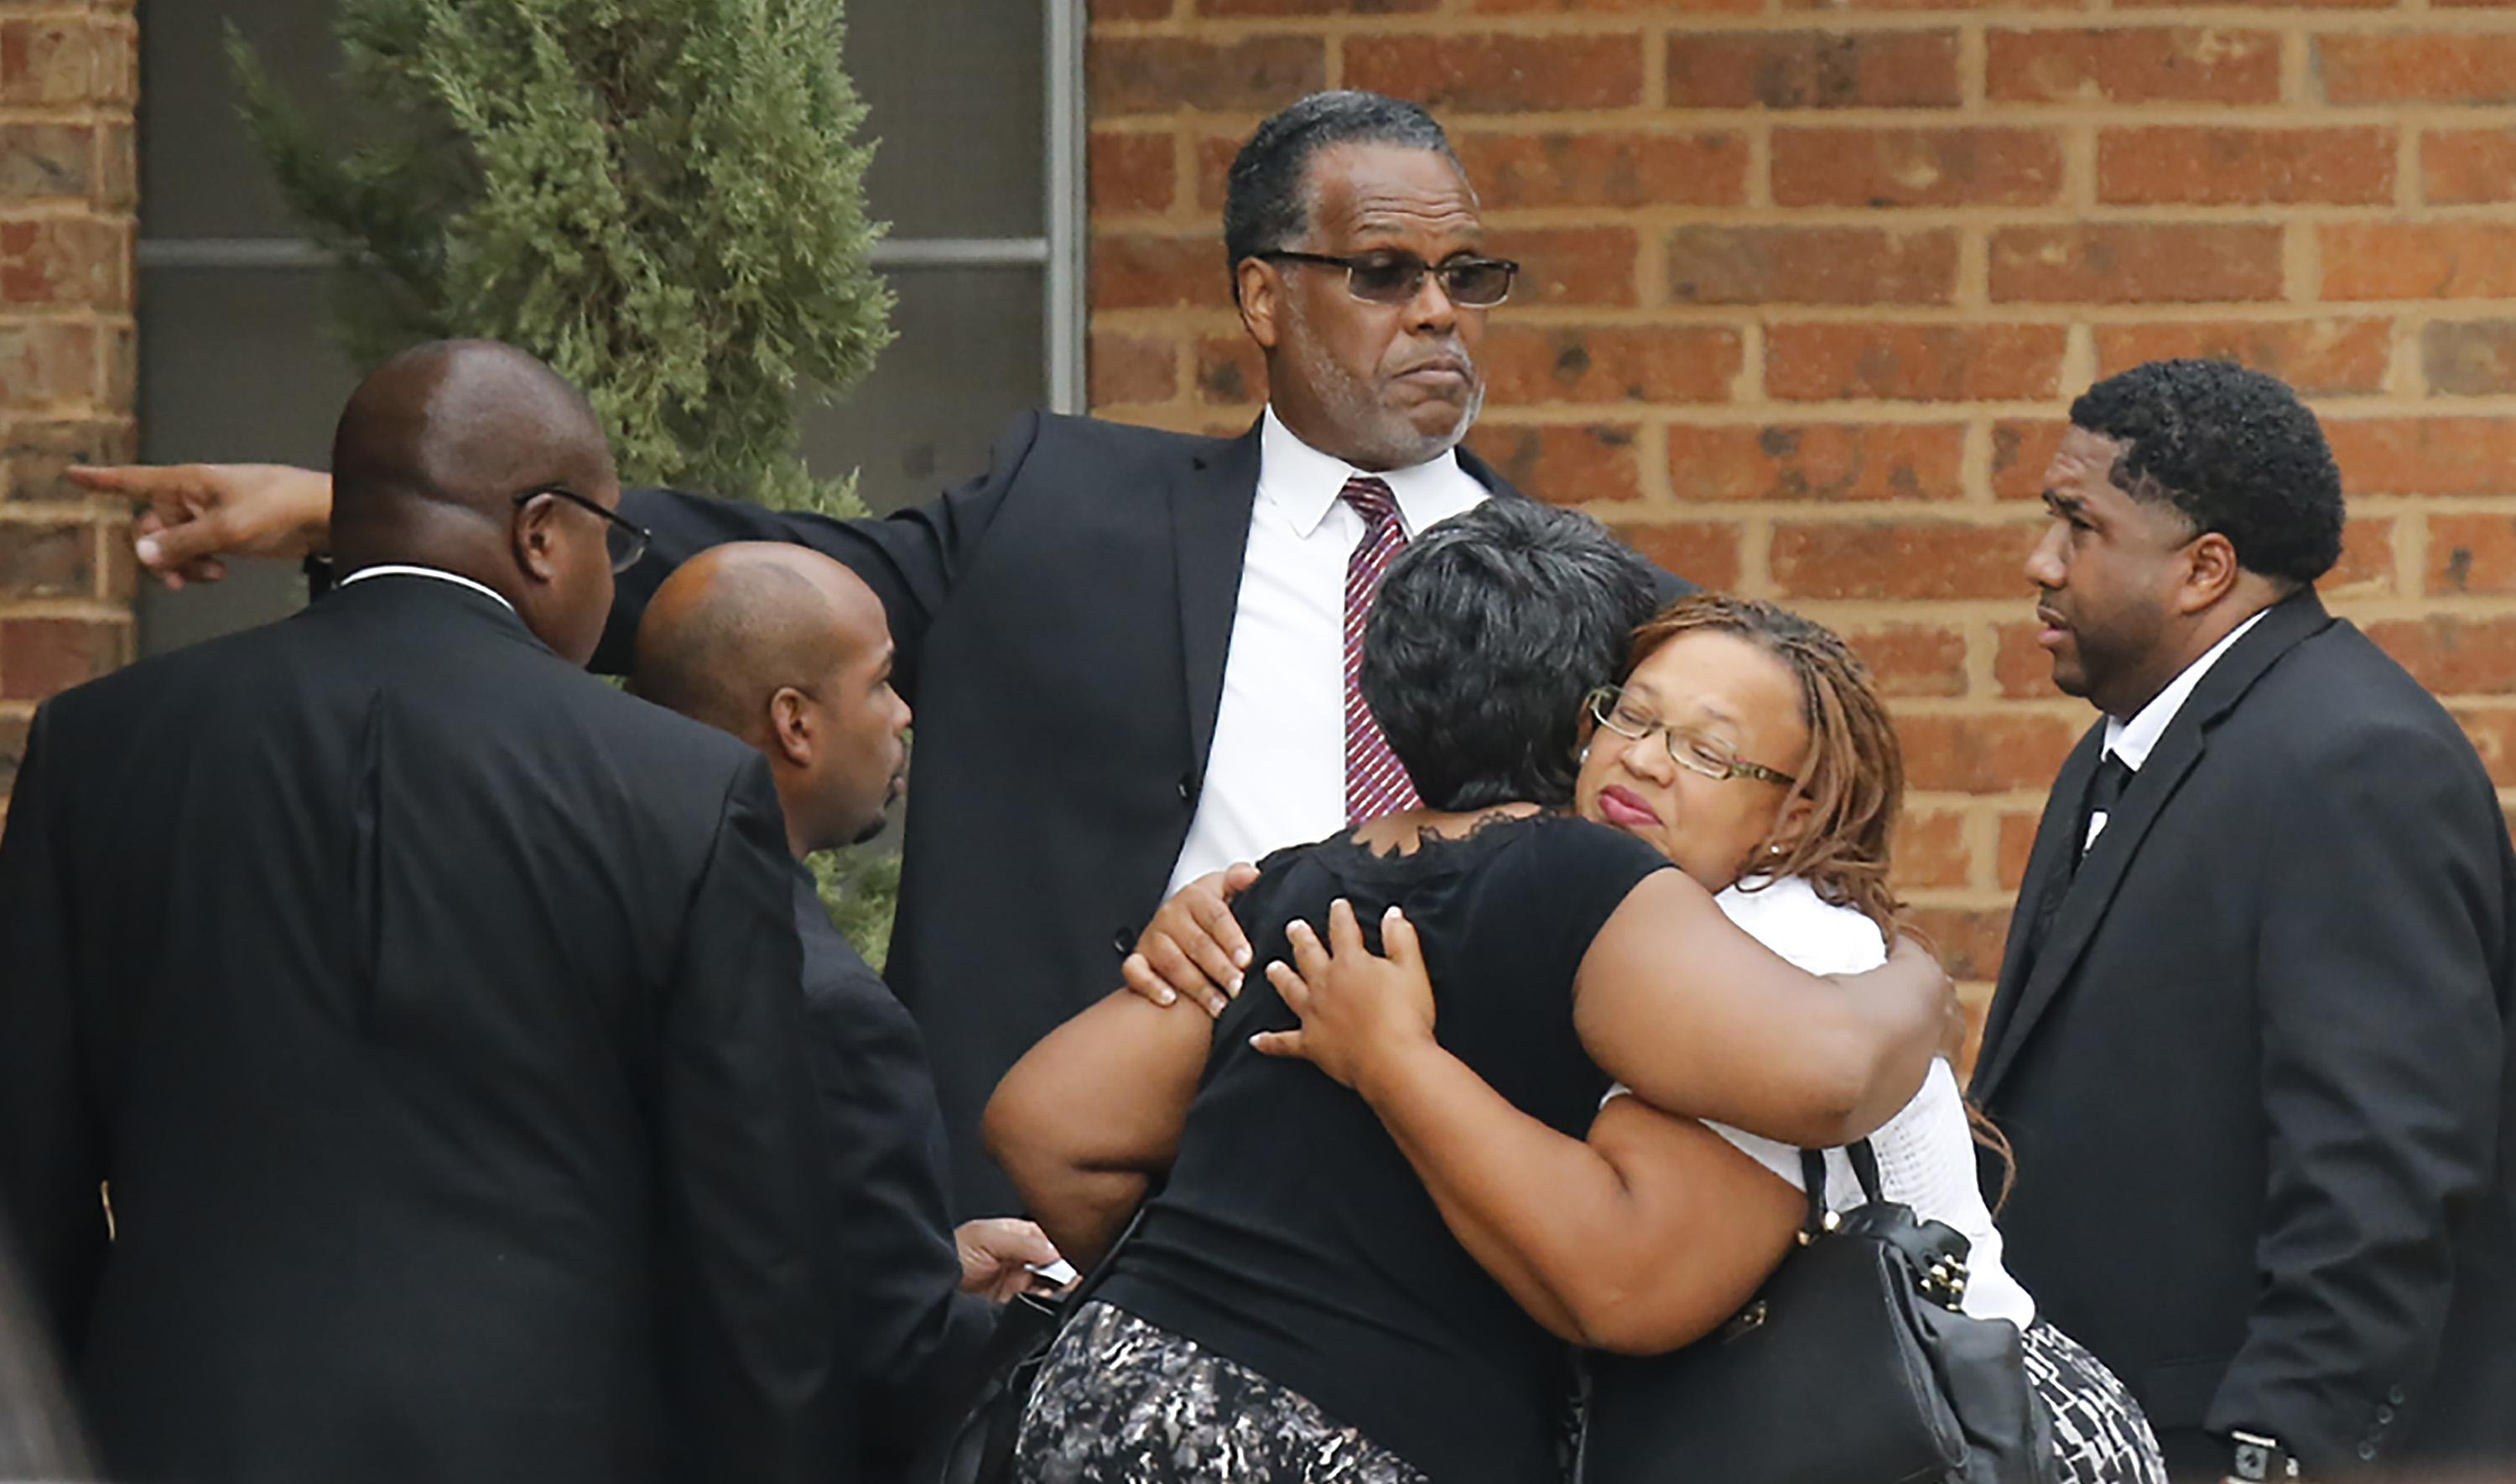 Two women, dressed in funeral clothes, embrace. A man in a suit directs people toward the service.